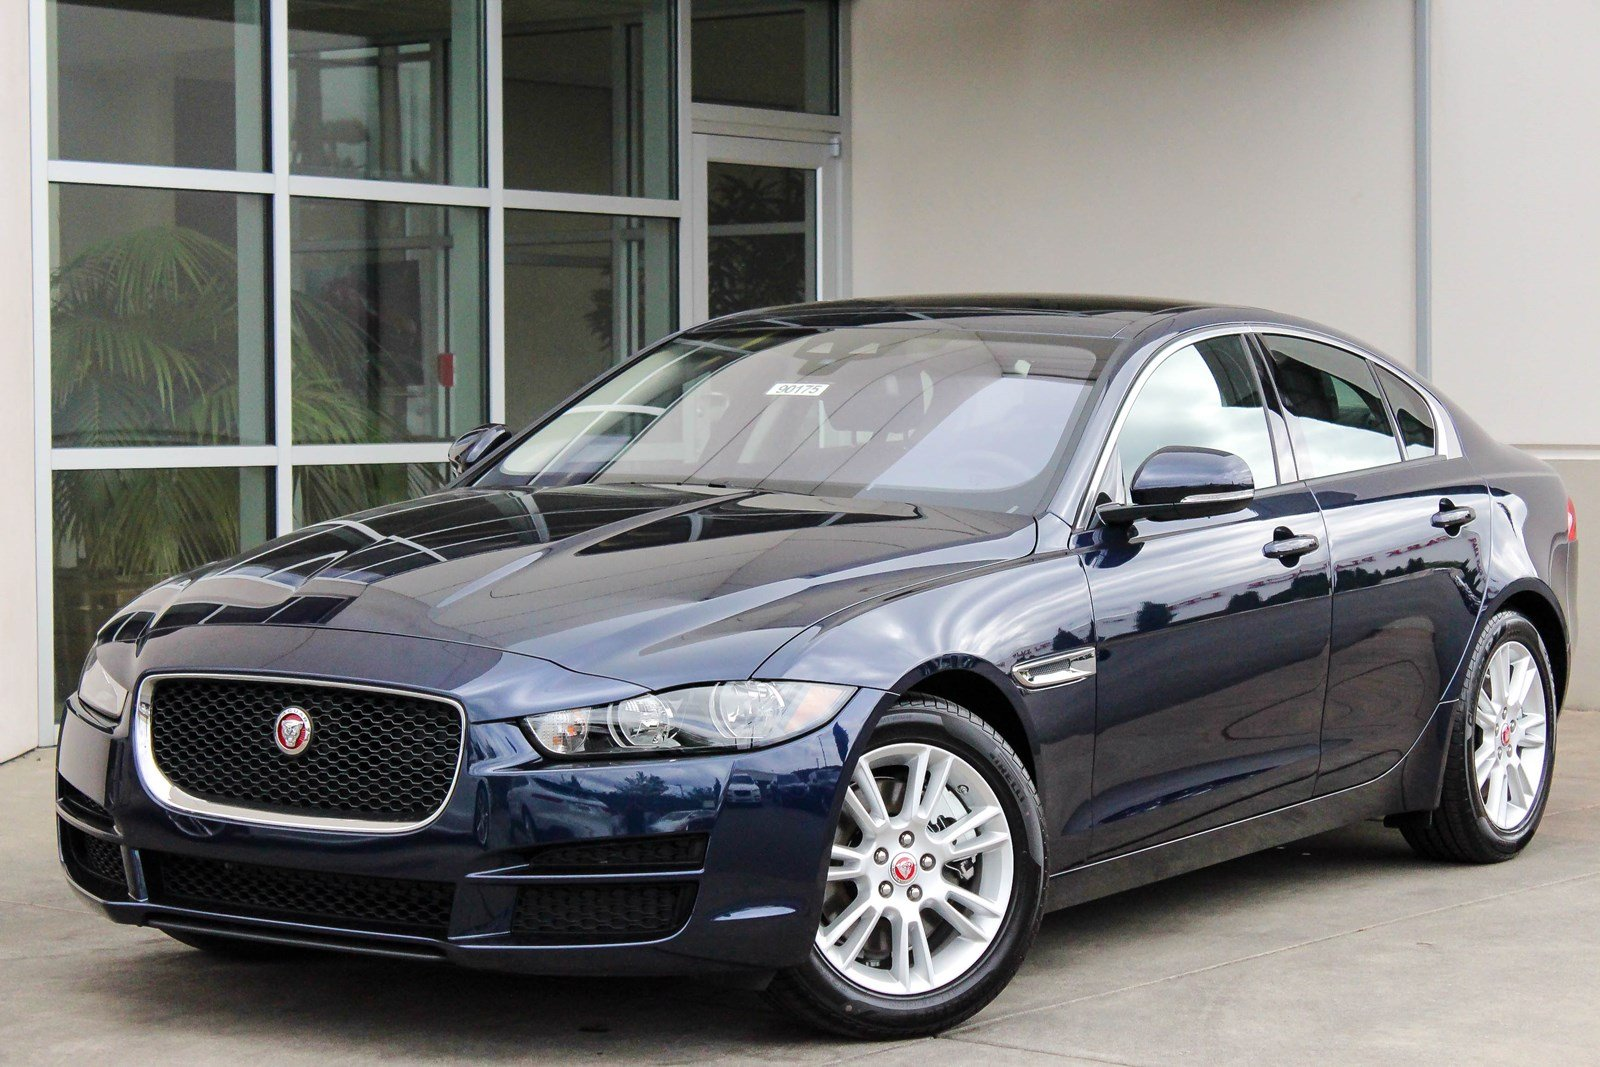 New 2018 Jaguar XE 25t Premium 4dr Car in Bellevue #90175 ...